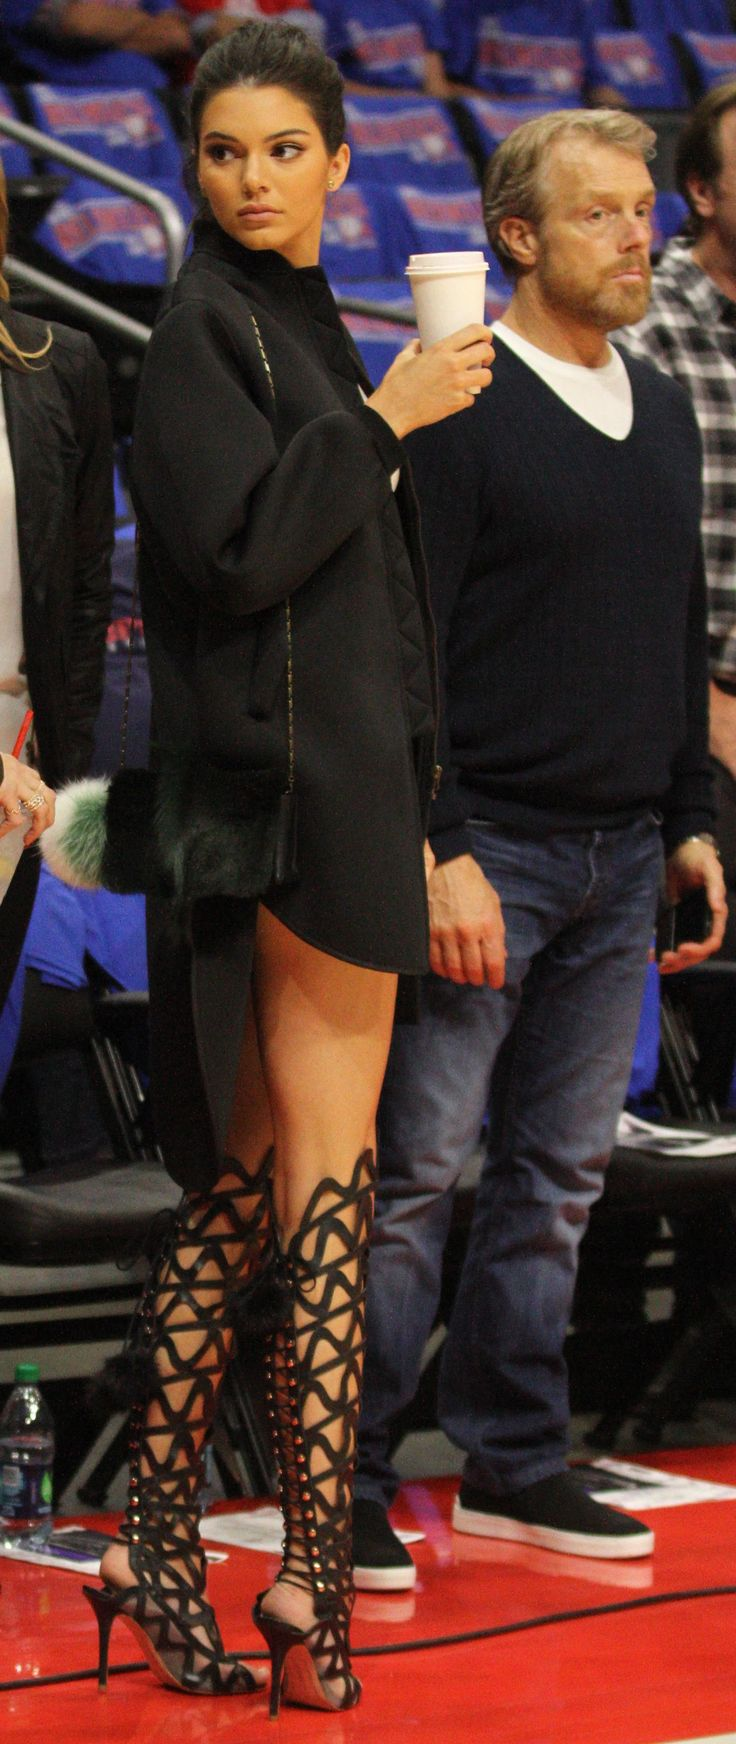 Kendall Jenner in Sophia Webster 'Mila' knee boots - Attending a Clippers game in Los Angeles @SophiaWebster_